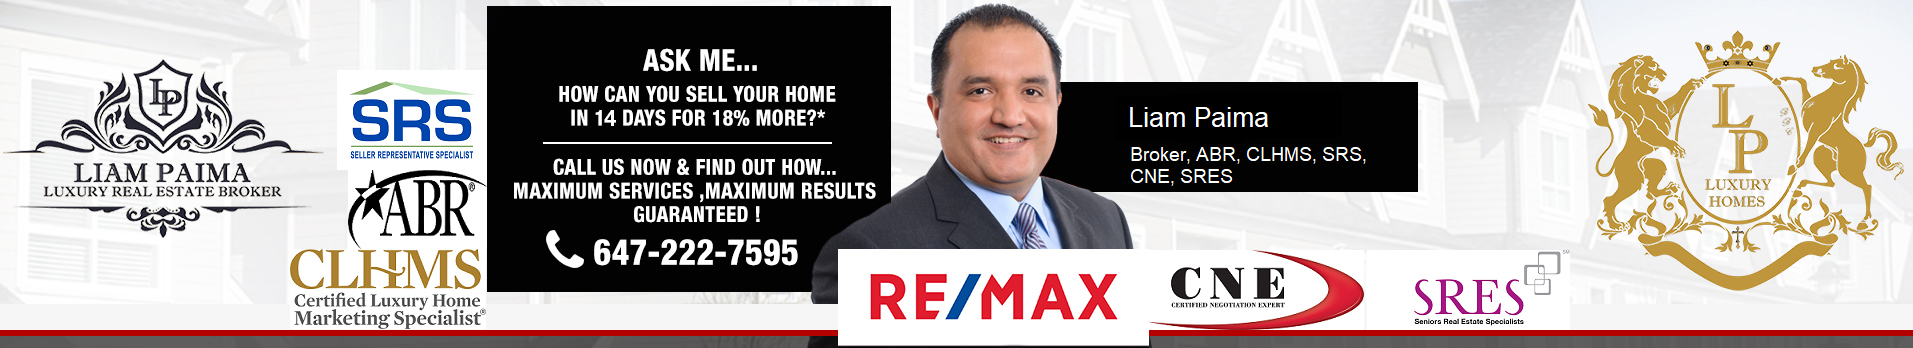 #1 Low Commission Real Estate Agent With Best Low Real Estate Commission Service In Toronto, Vaughan, Kleinburg, Oakville, Richmond Hill, Mississauga, Brampton, Milton, Caledon, Georgetown, Burlington, Orangeville, Markham - Page - 11